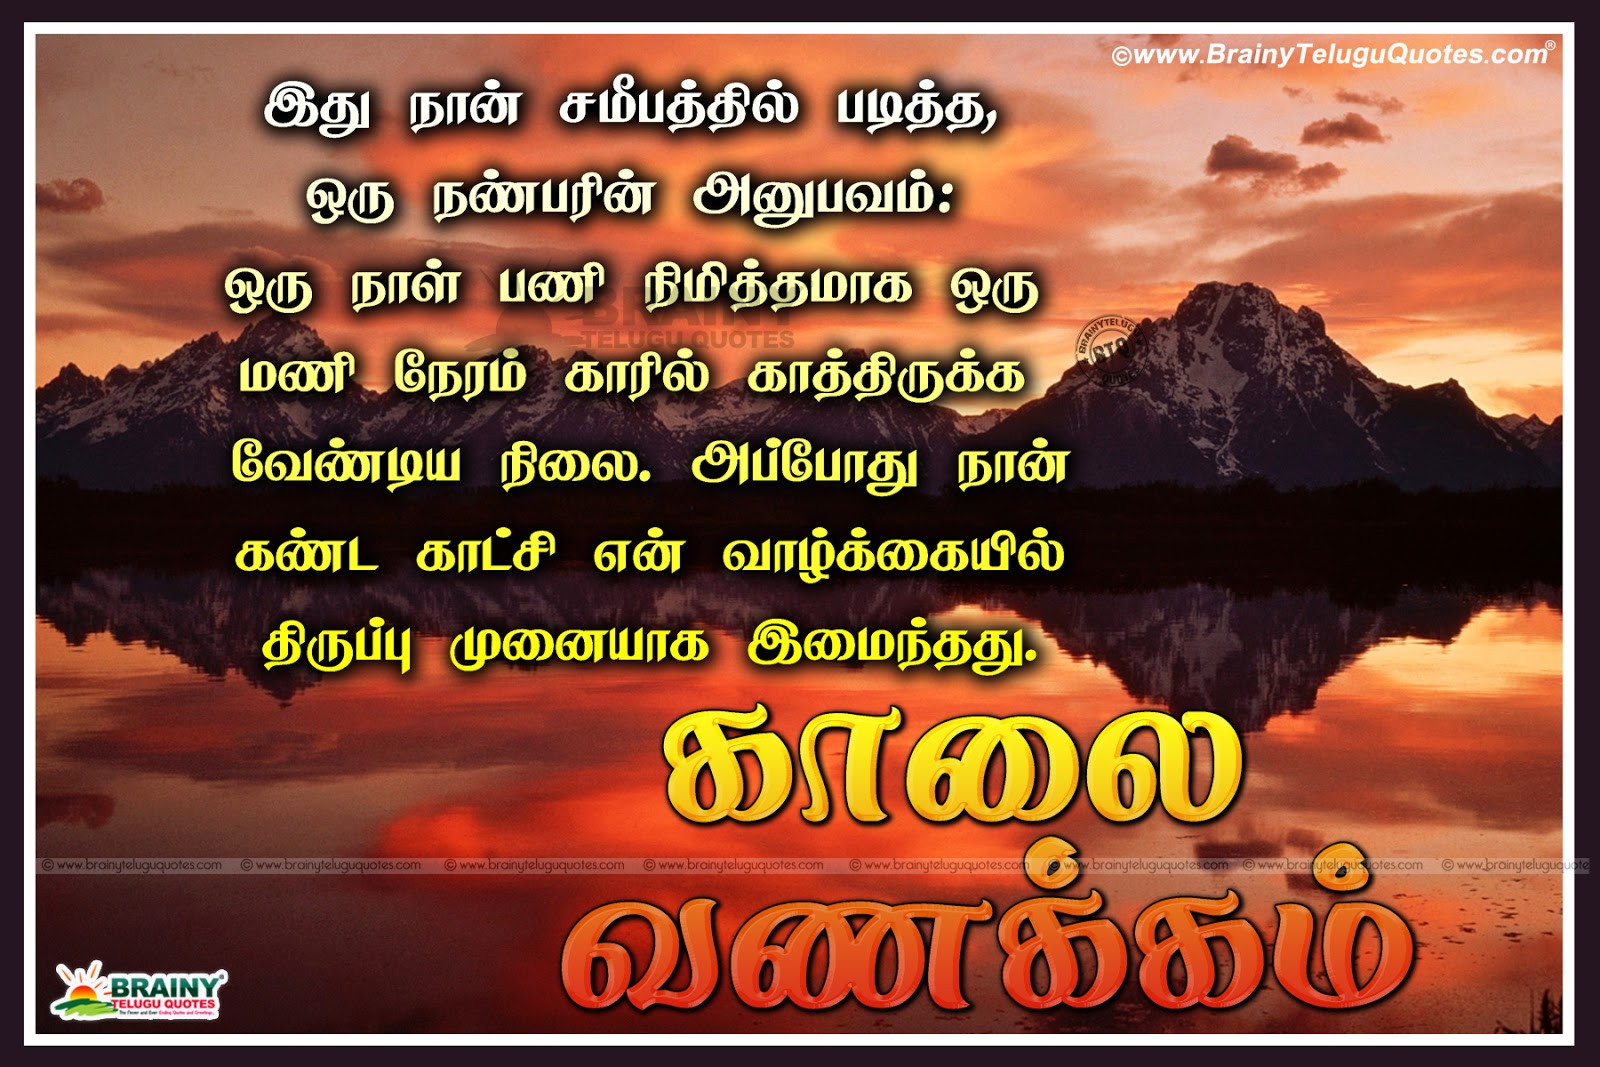 Good Morning Image With Quotes In Tamil Imaganationfaceorg